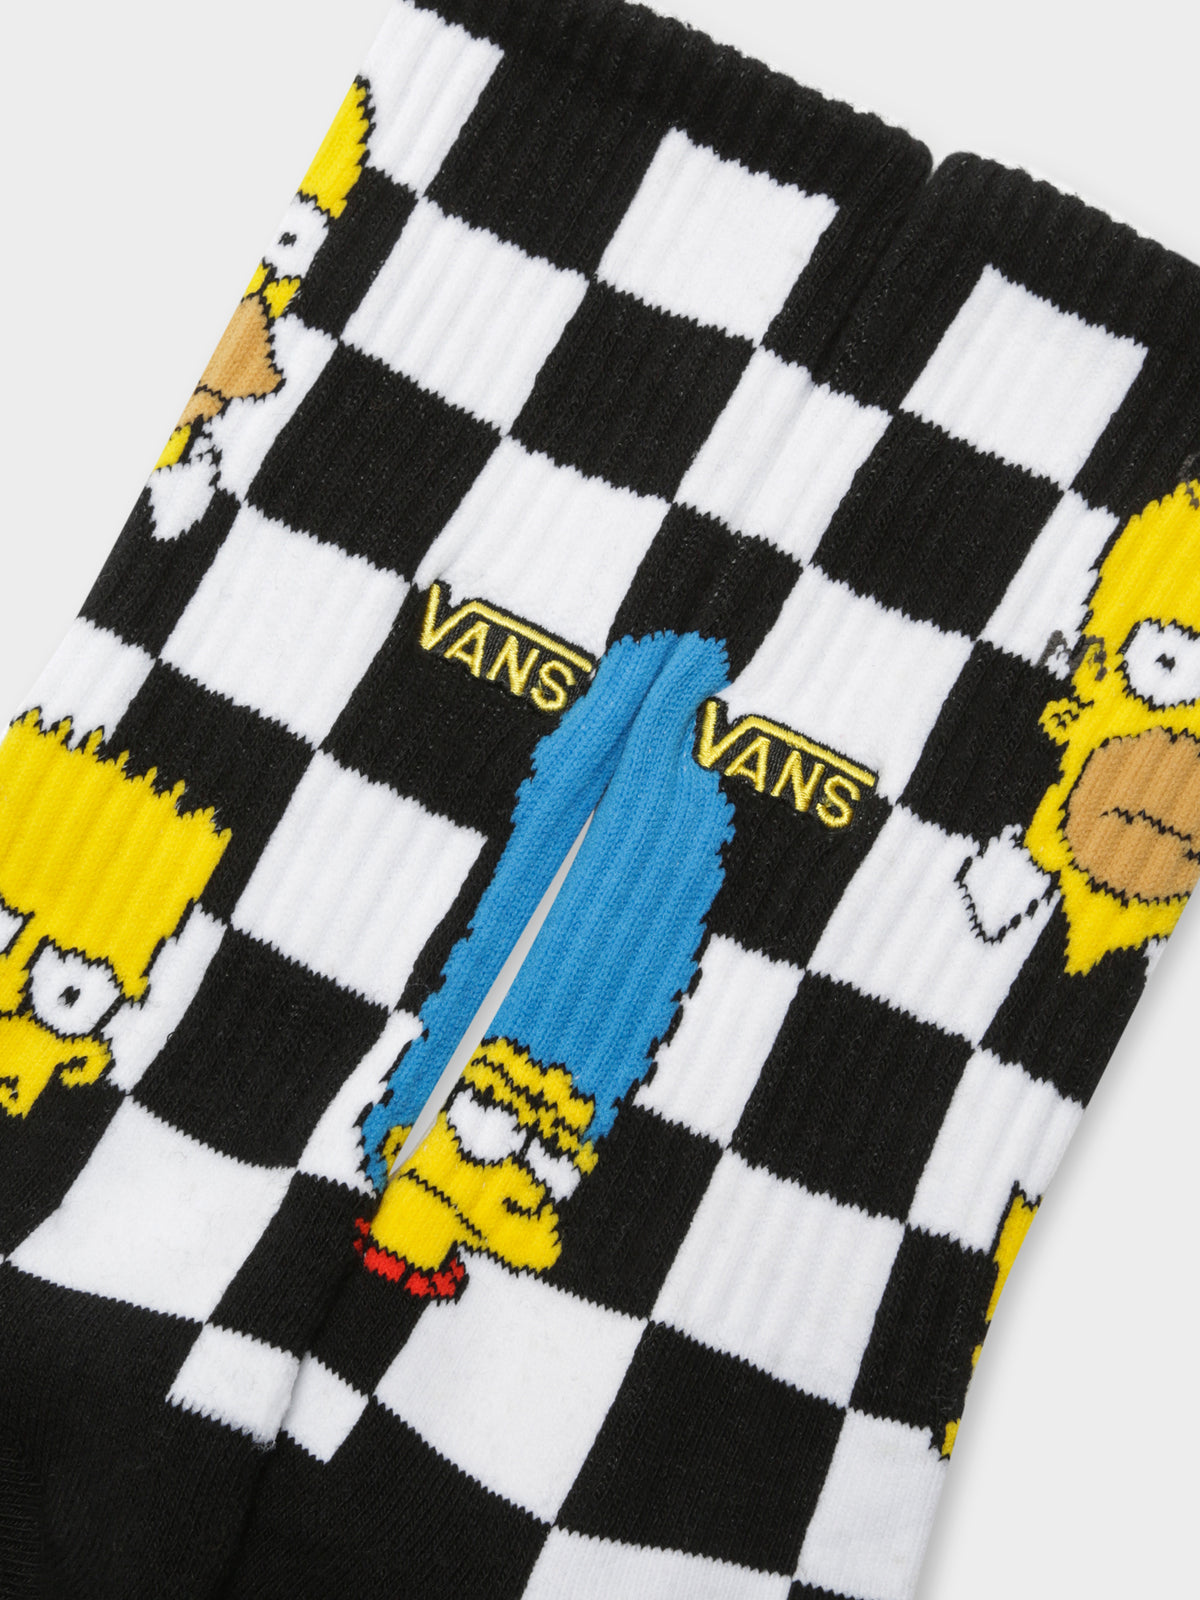 The Simpsons x Vans Crew Socks in Family Check